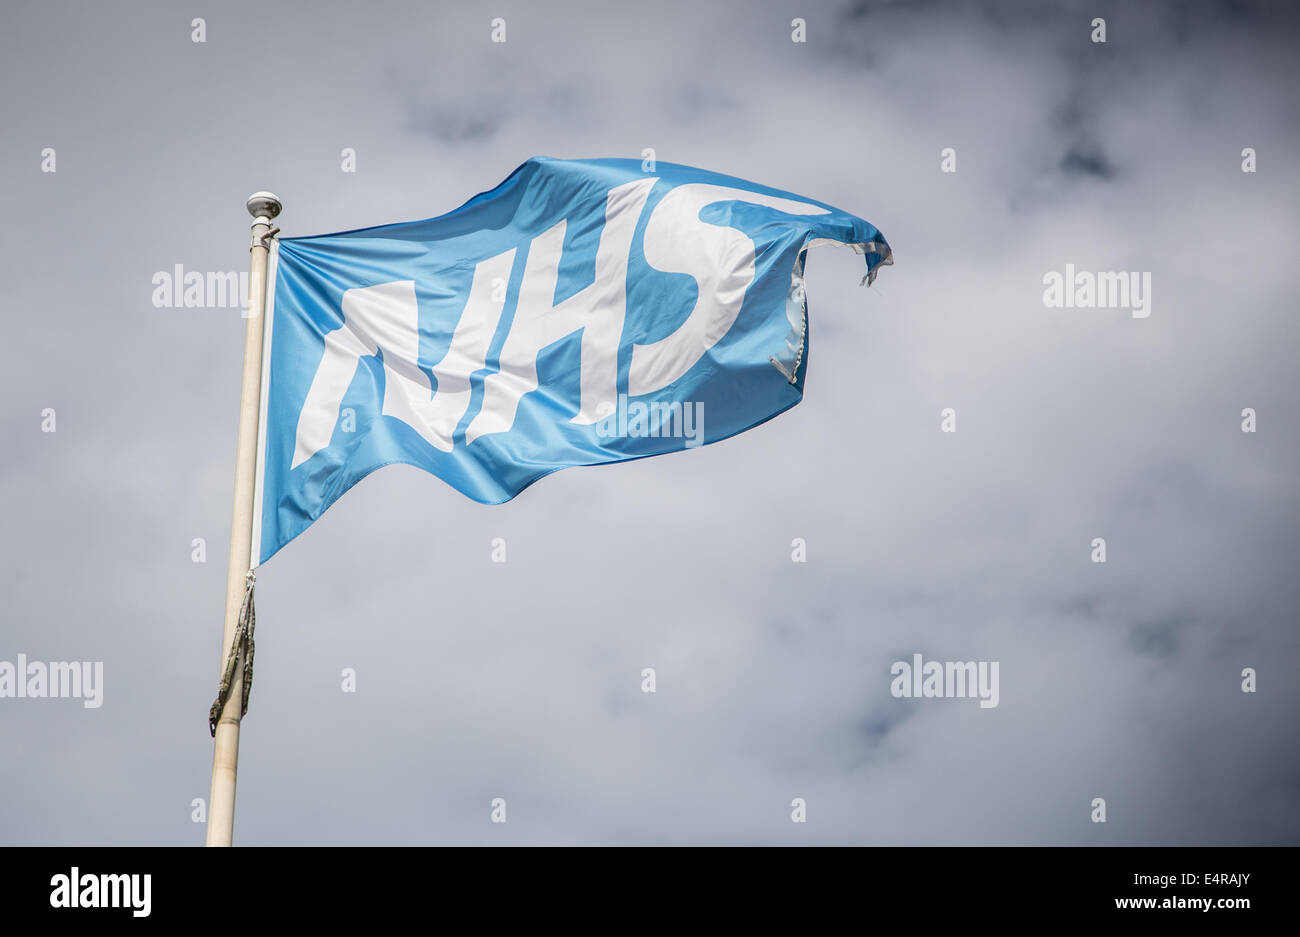 NHS flag flying on a flag pole in the wind - Stock Image